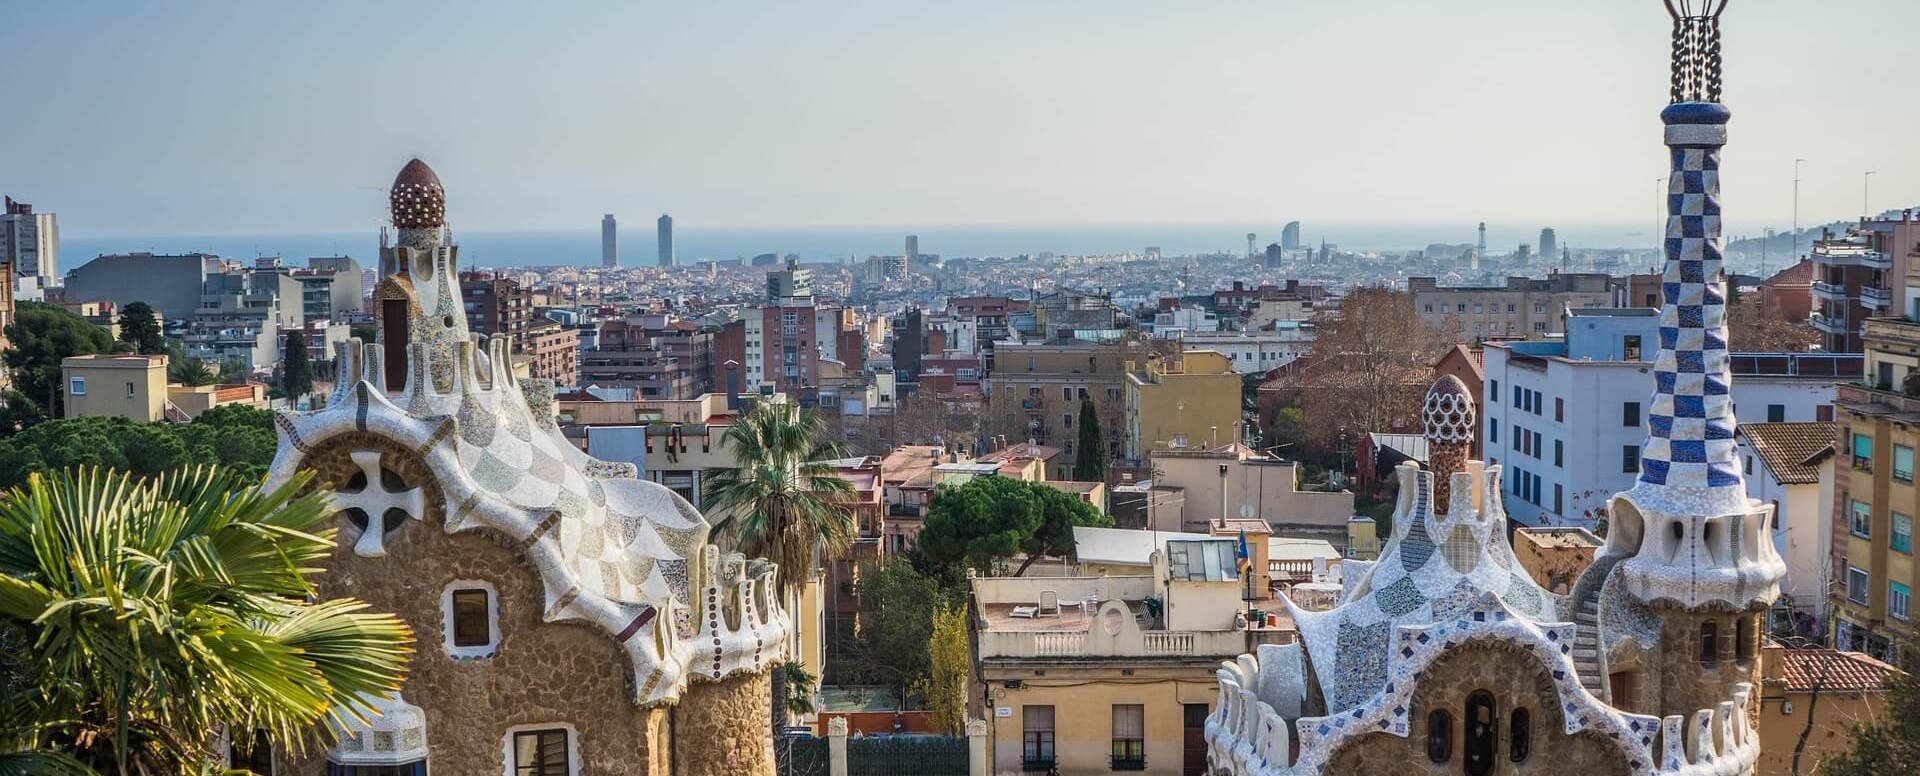 What to do in Spain? Activity Guide - Spain